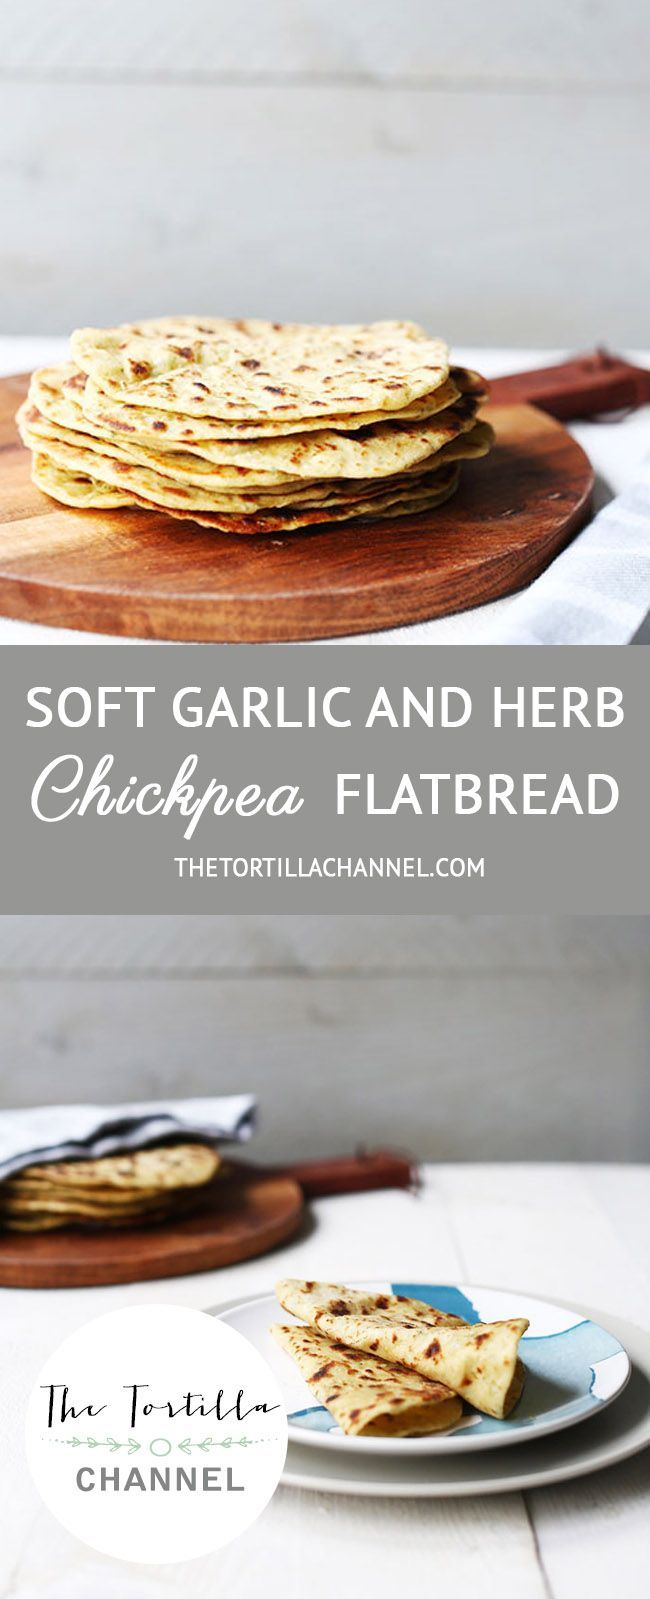 This soft flatbread recipe contains chickpea flour, garlic and herbs. It is a vegan recipe.  Pin it now so you can use it later or visit the website!